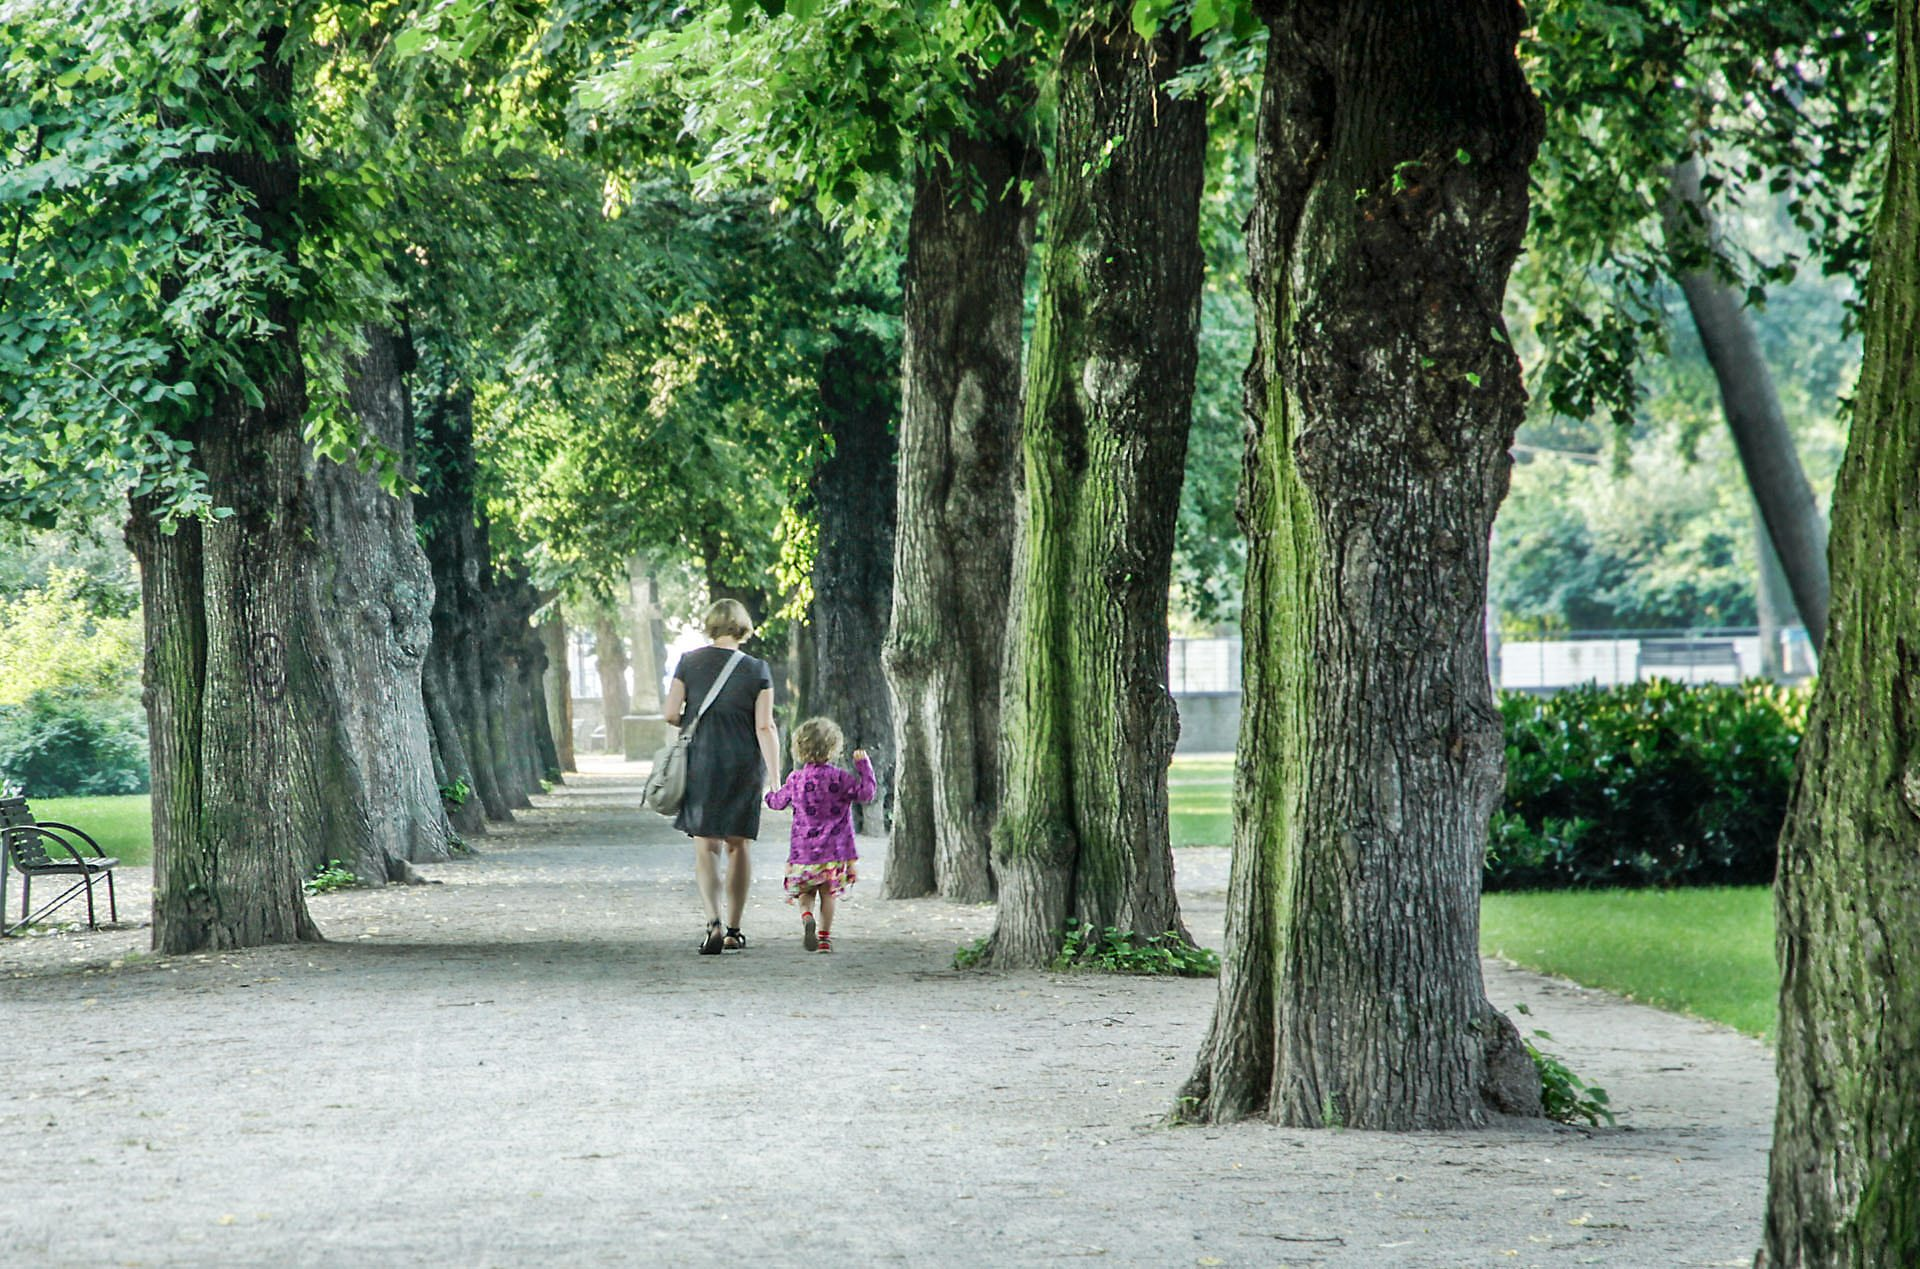 Erfurt inhabitants enjoy today the greenspace investments of the past. Photo (copyright) Monika Lawrence